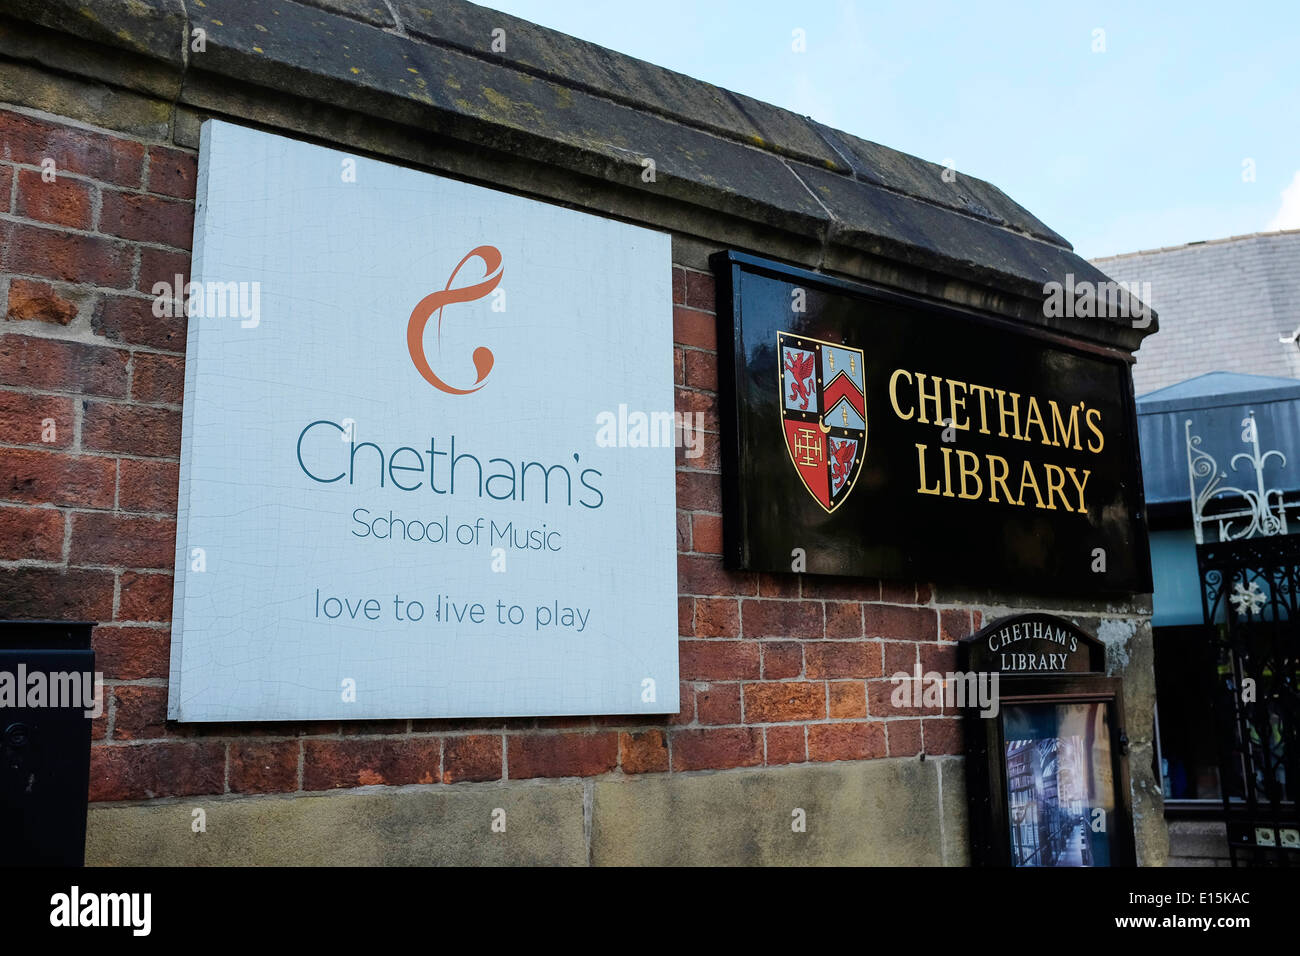 Signage outside Chethams School of Music in Manchester city centre UK - Stock Image